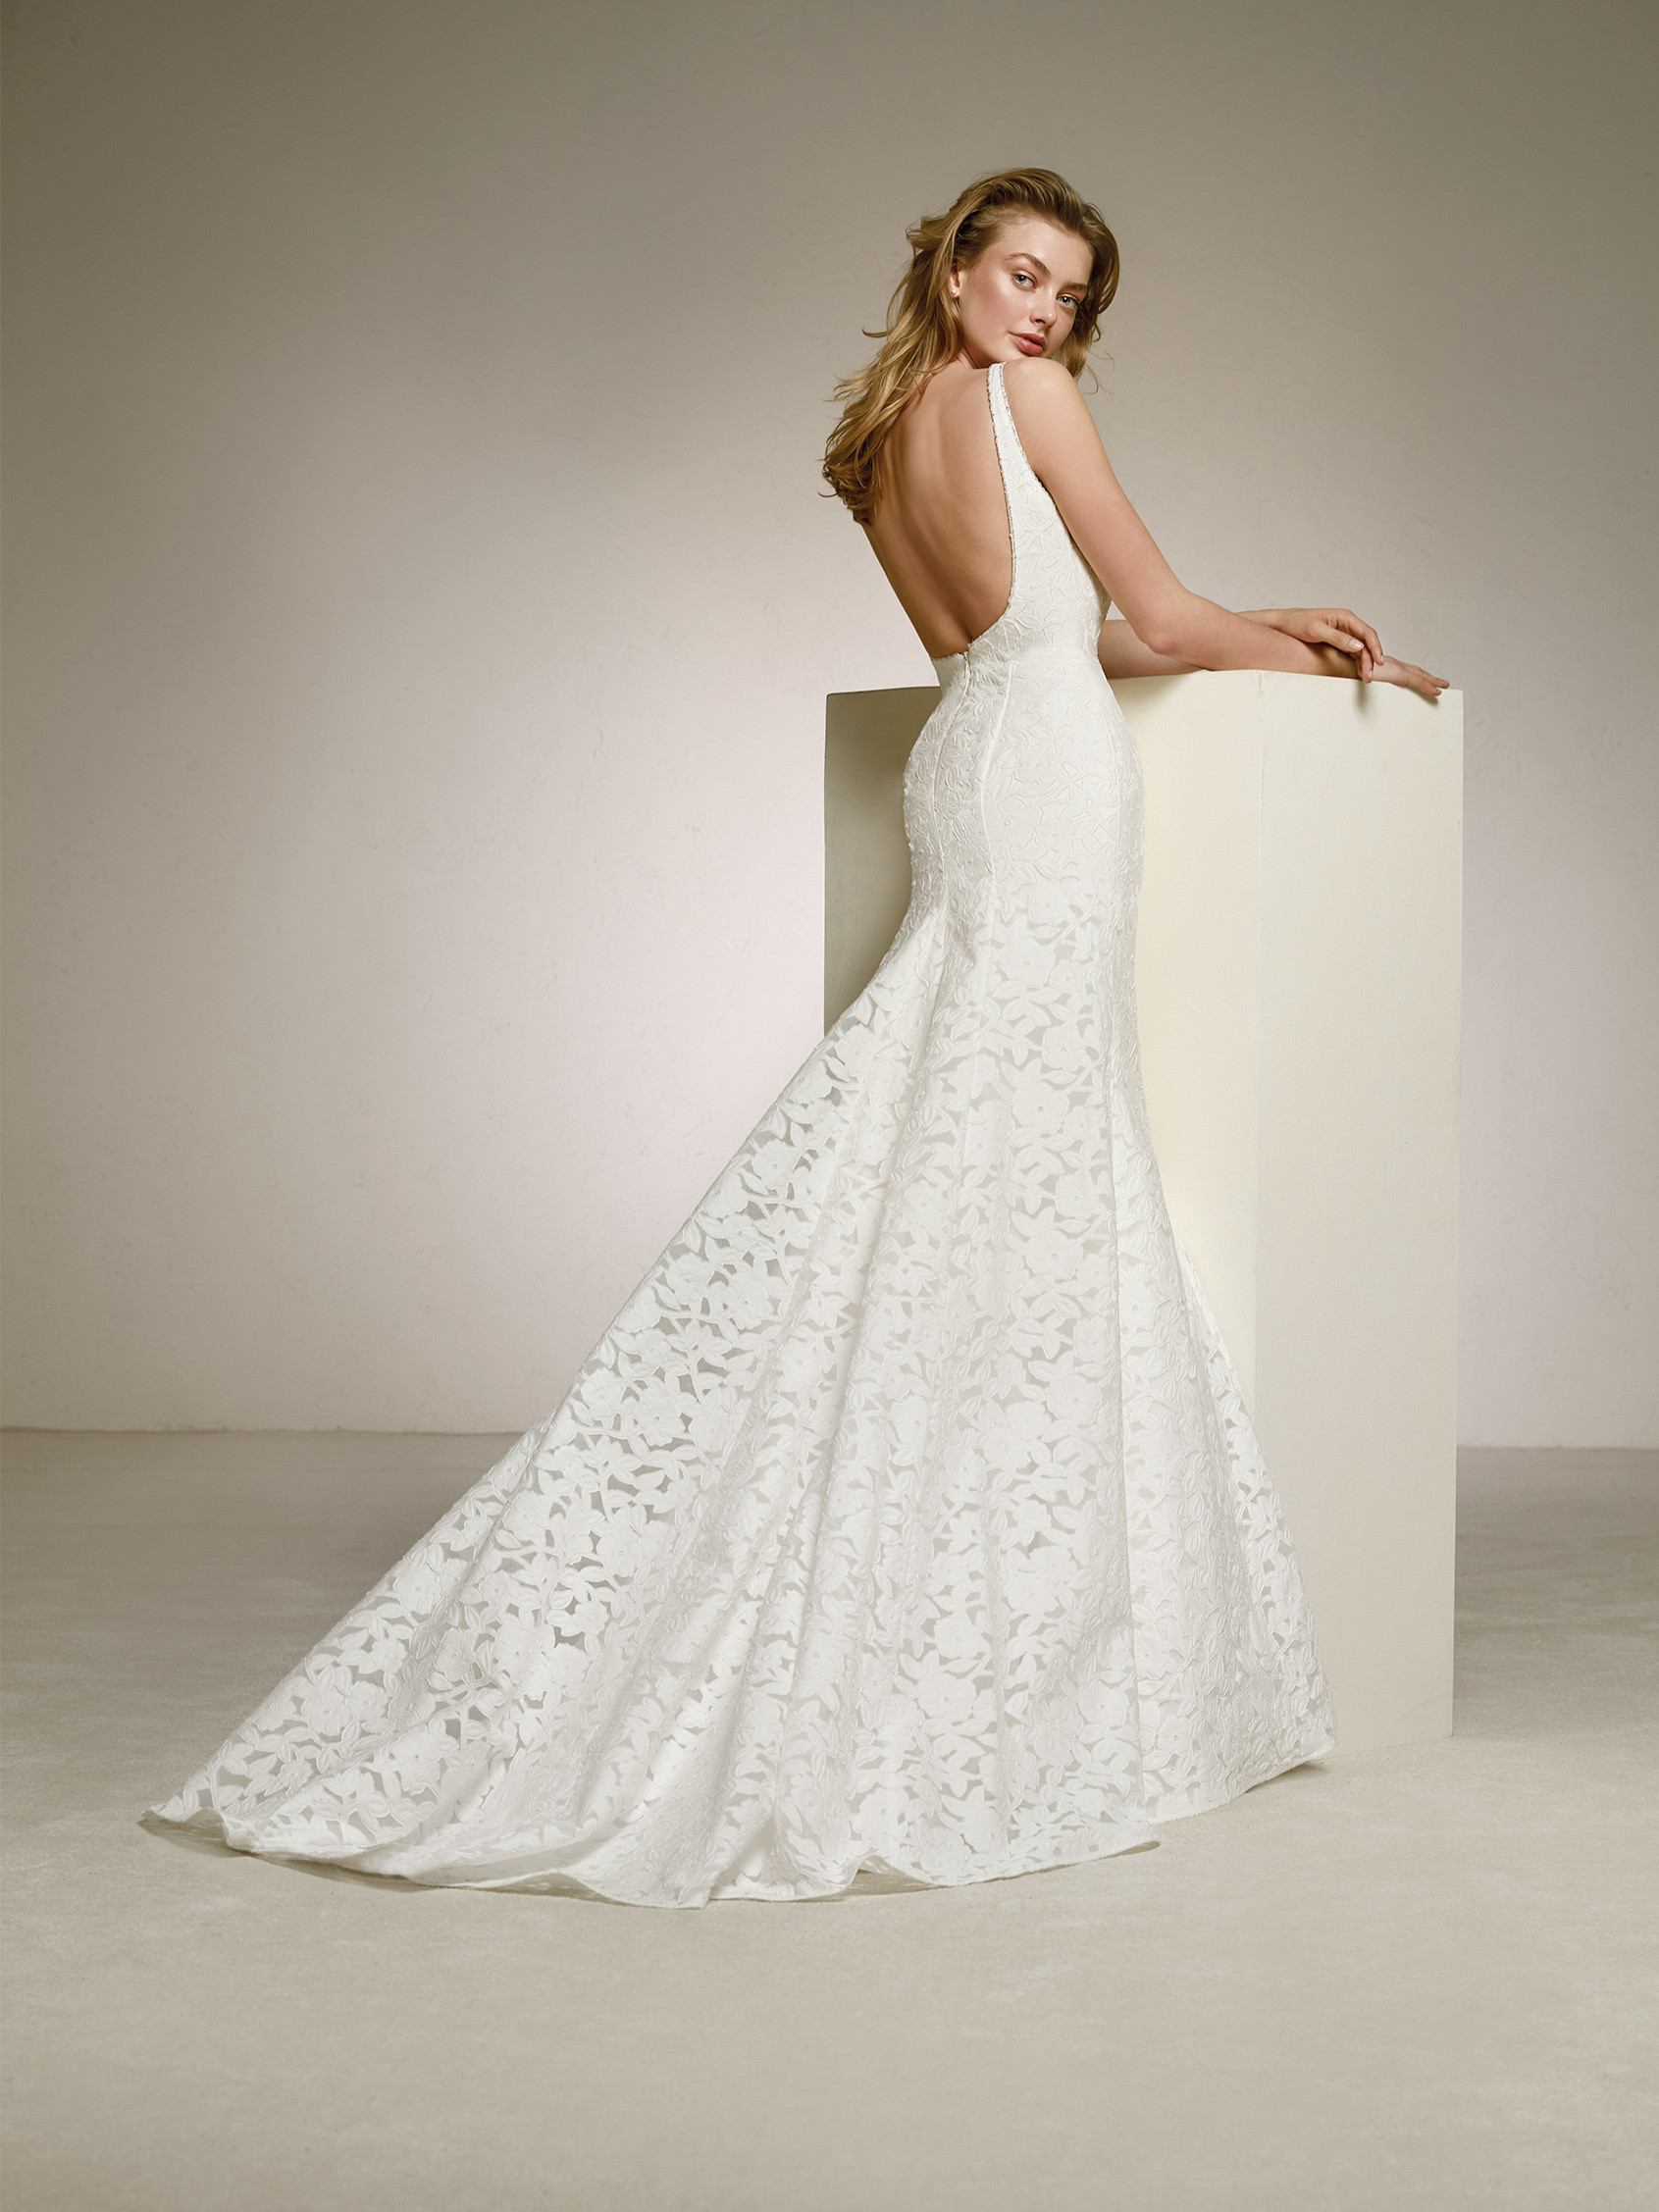 stores with wedding dresses photo - 1